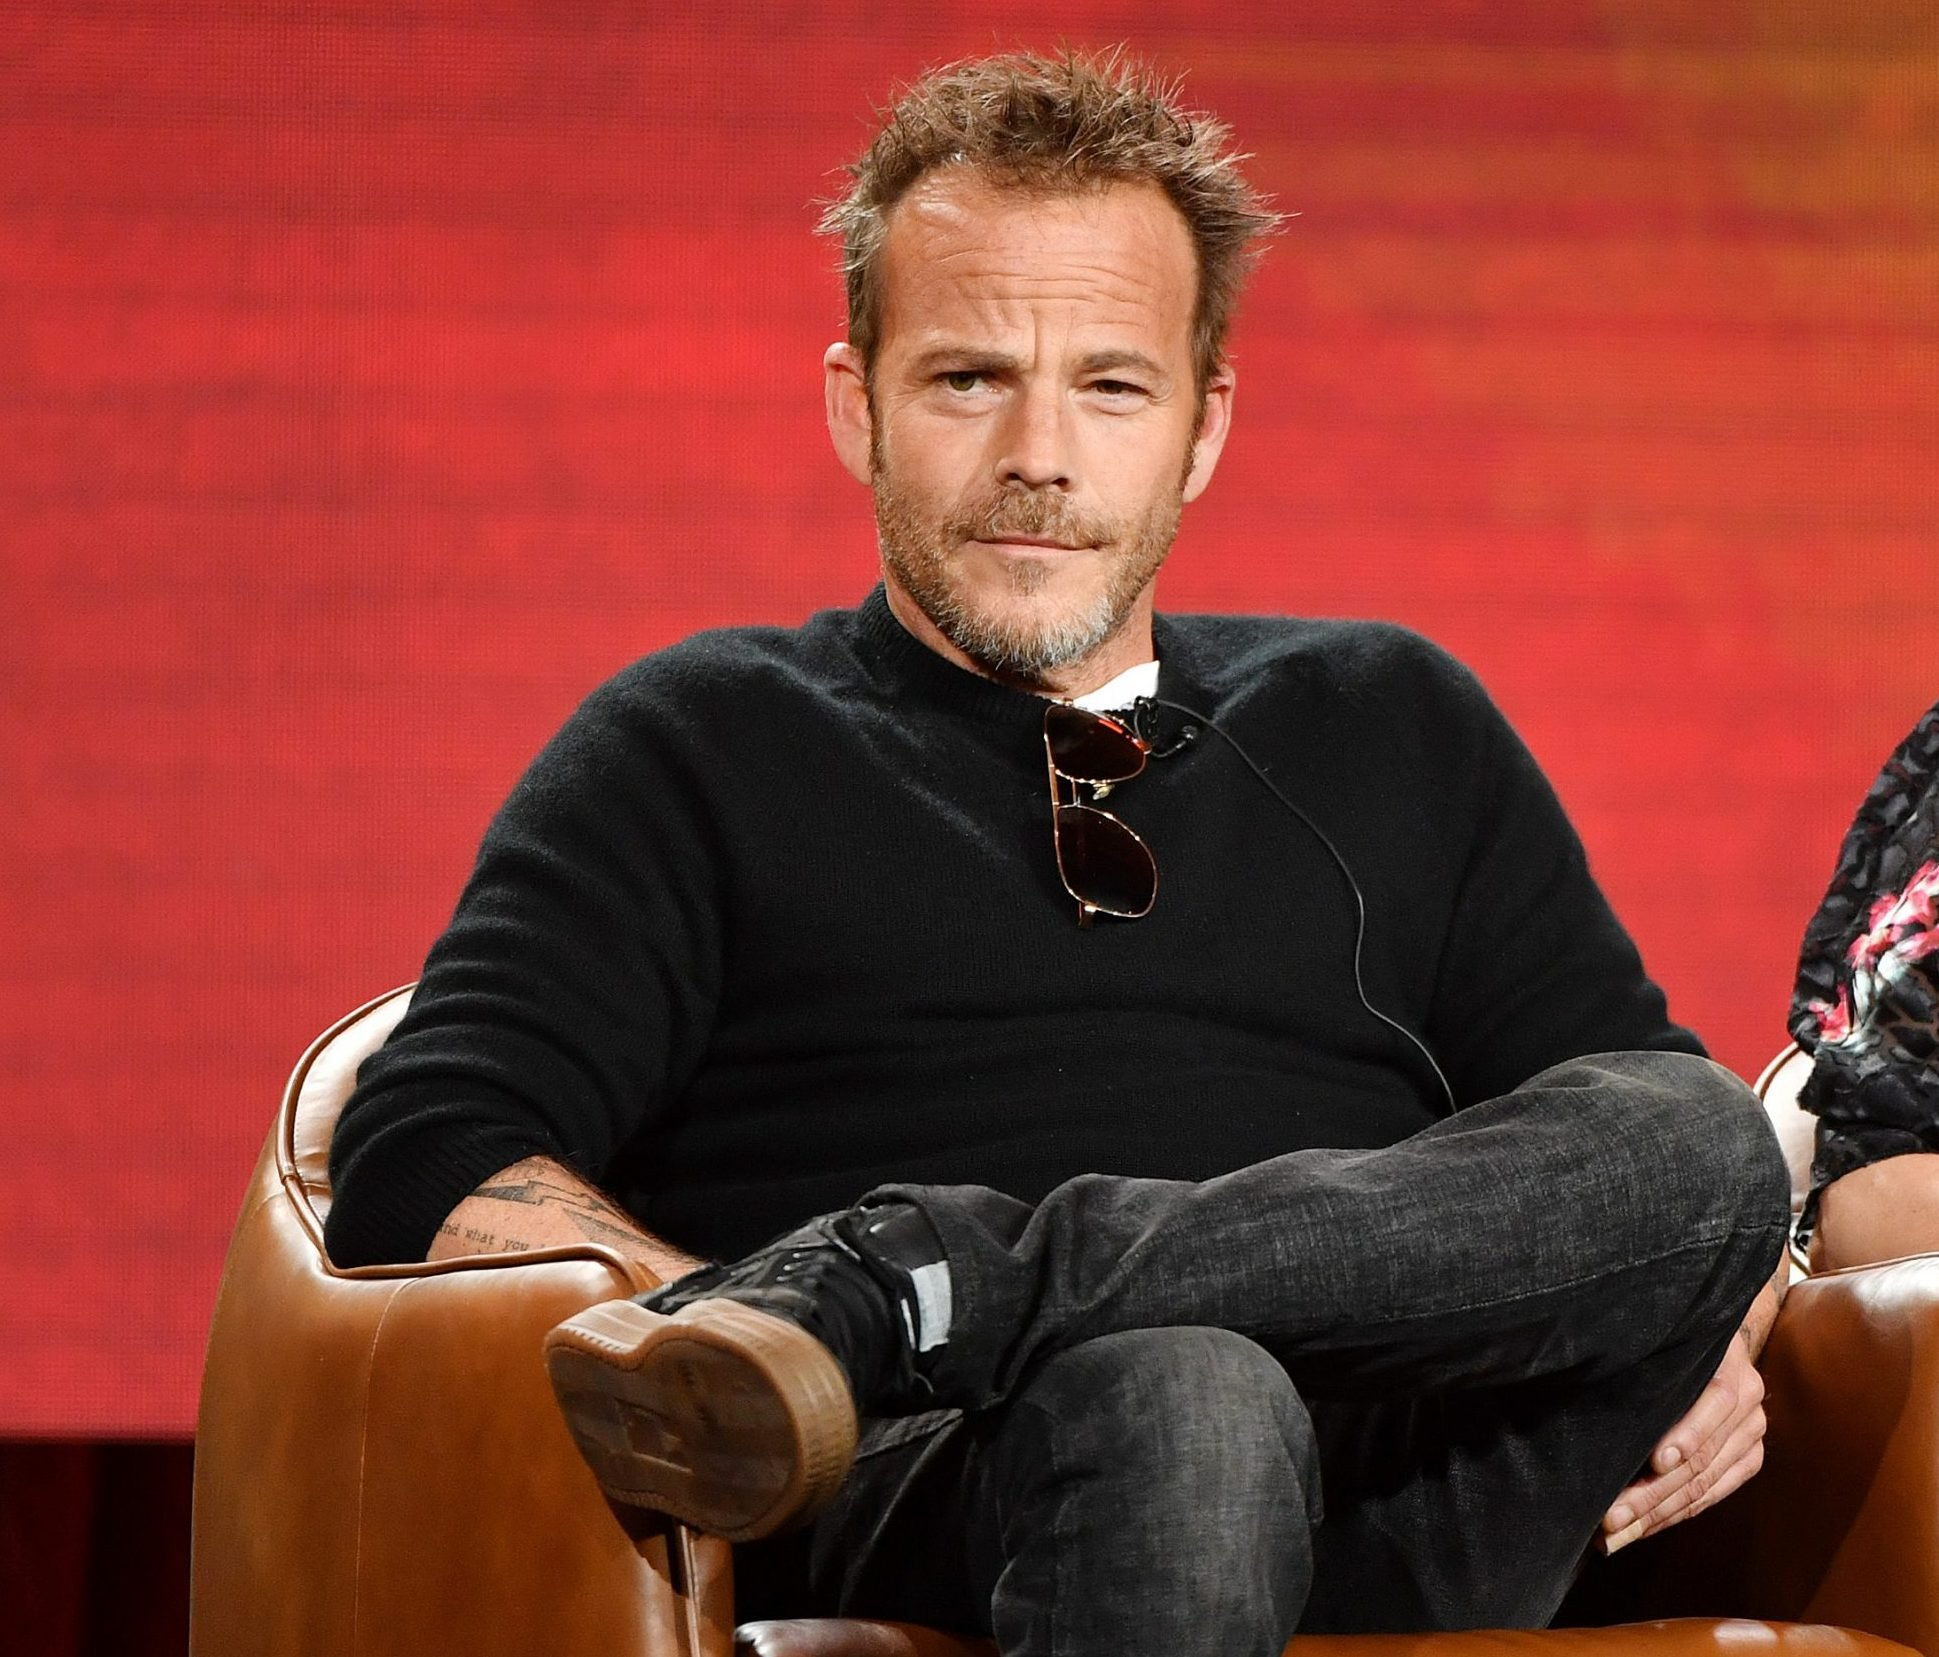 gettyimages 1198136122 scaled e1627380672991 20 Things You Might Not Have Known About Stephen Dorff